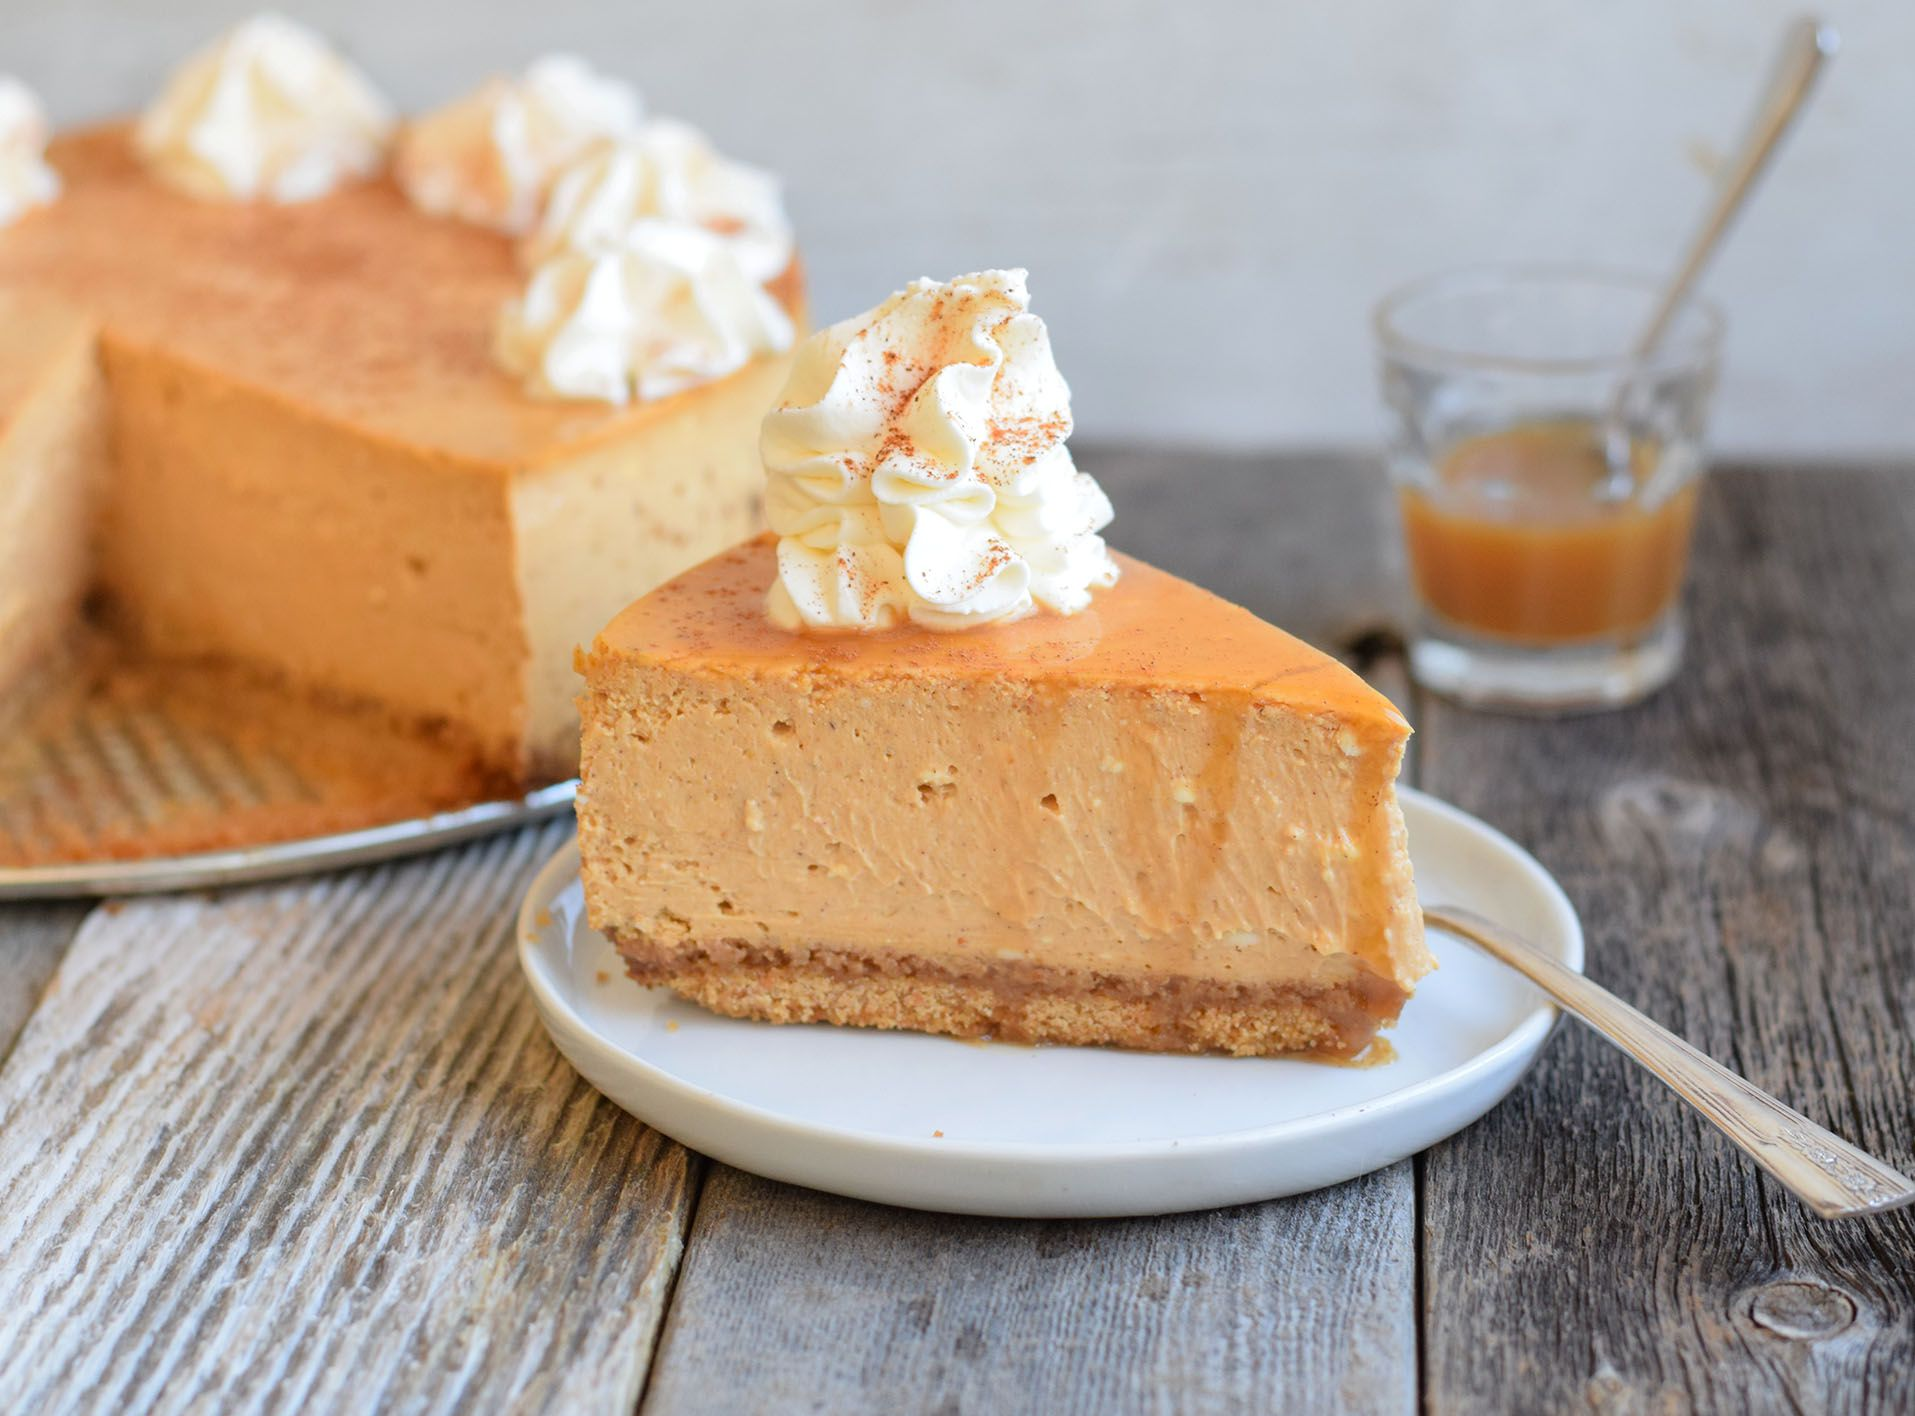 Maple Bourbon Whipped Cream Takes Pumpkin Cheesecake to the Next Level